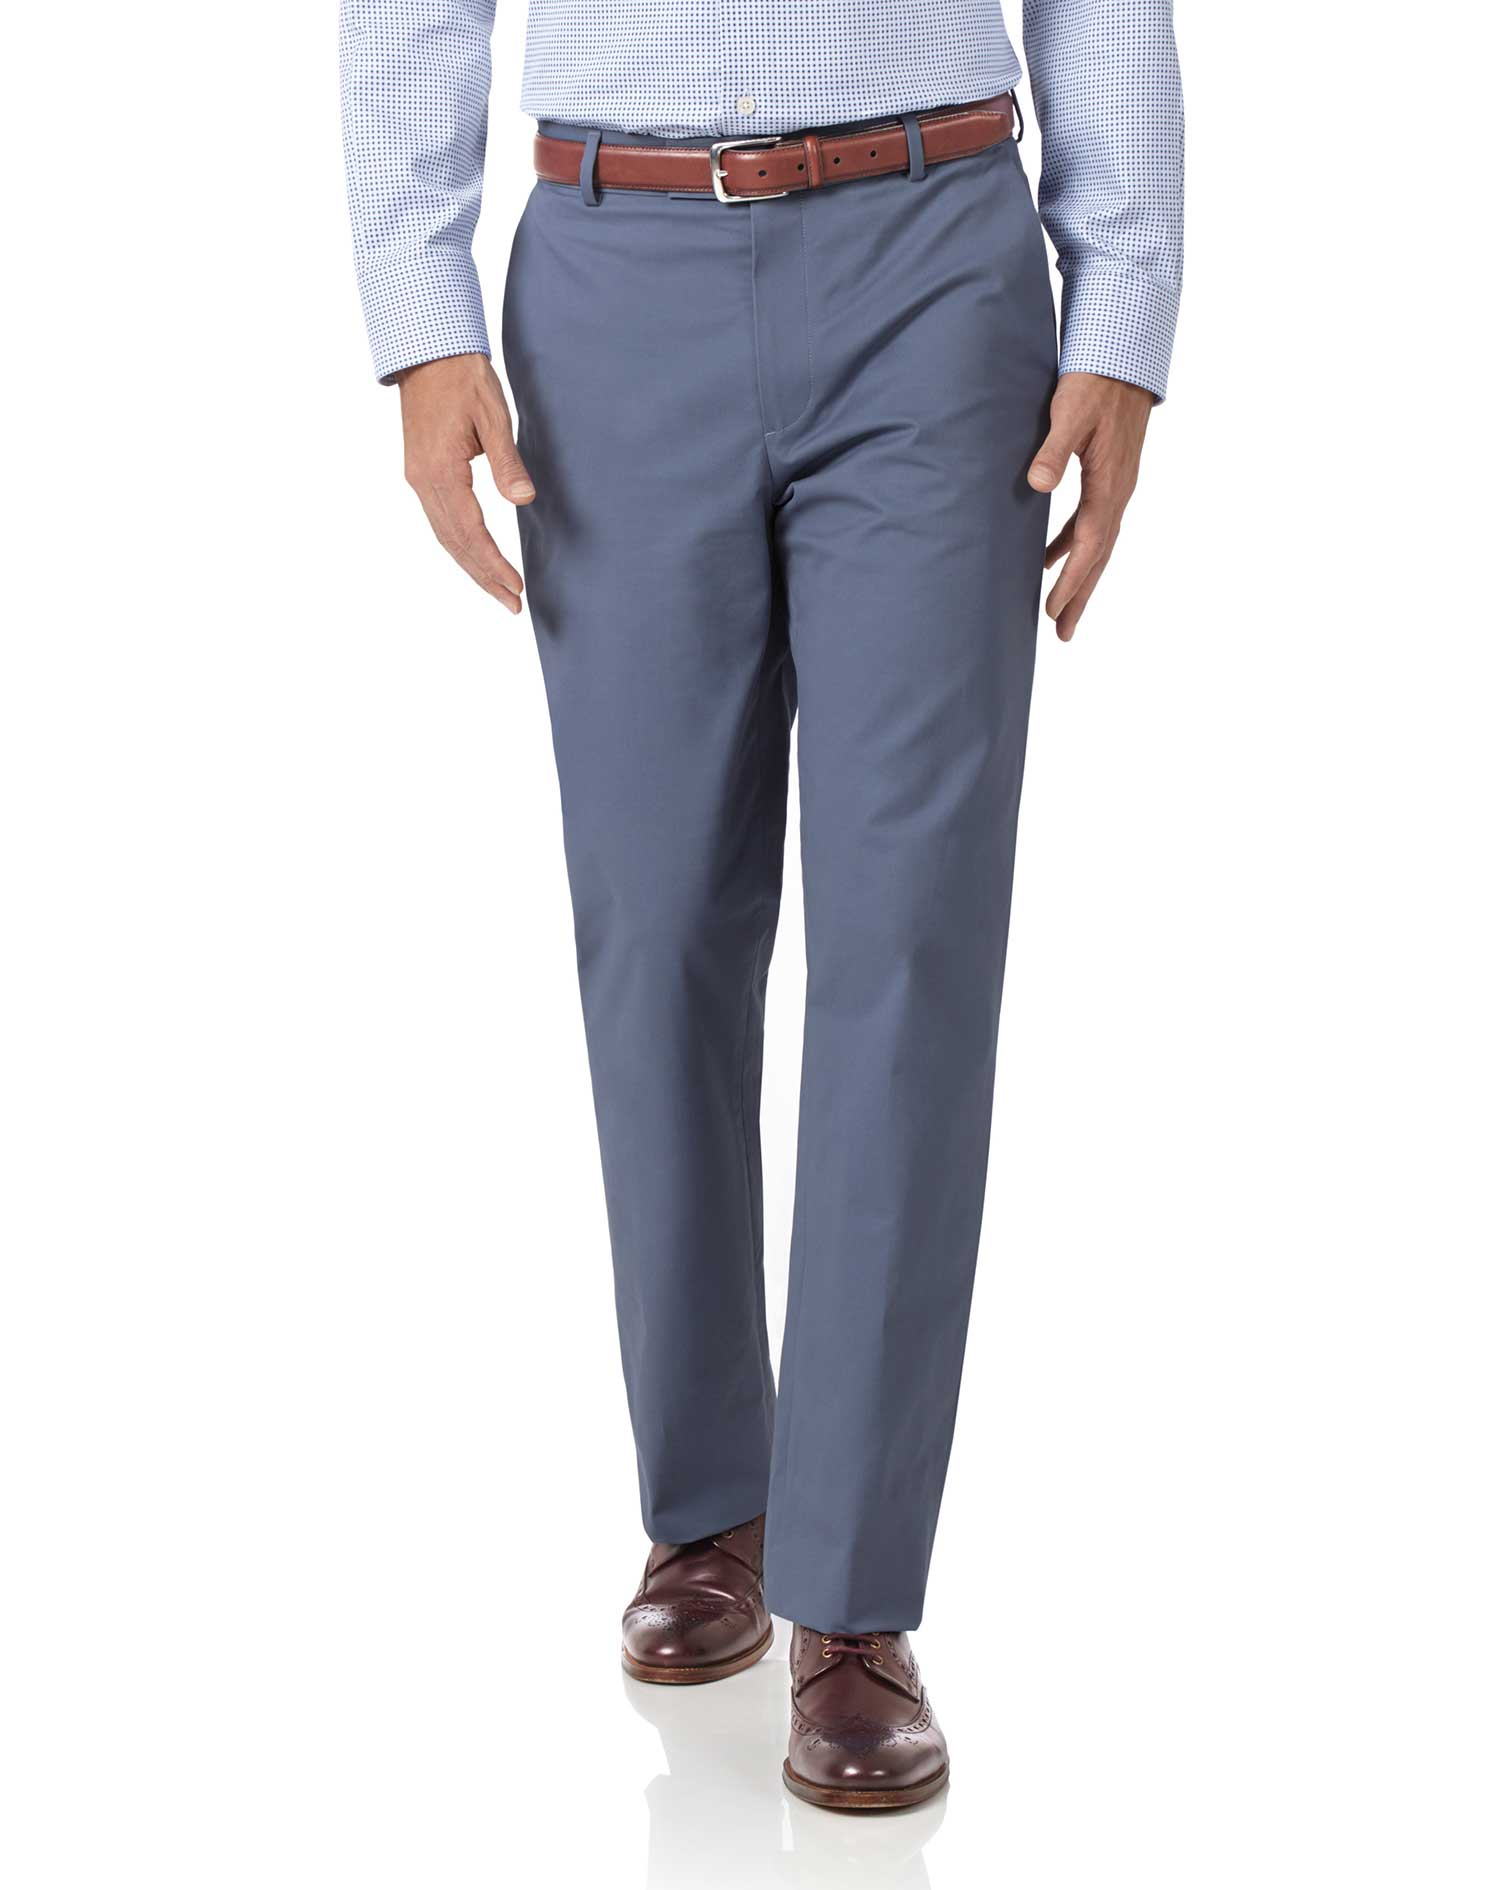 Blue Classic Fit Stretch Cotton Chino Trousers Size W42 L30 by Charles Tyrwhitt